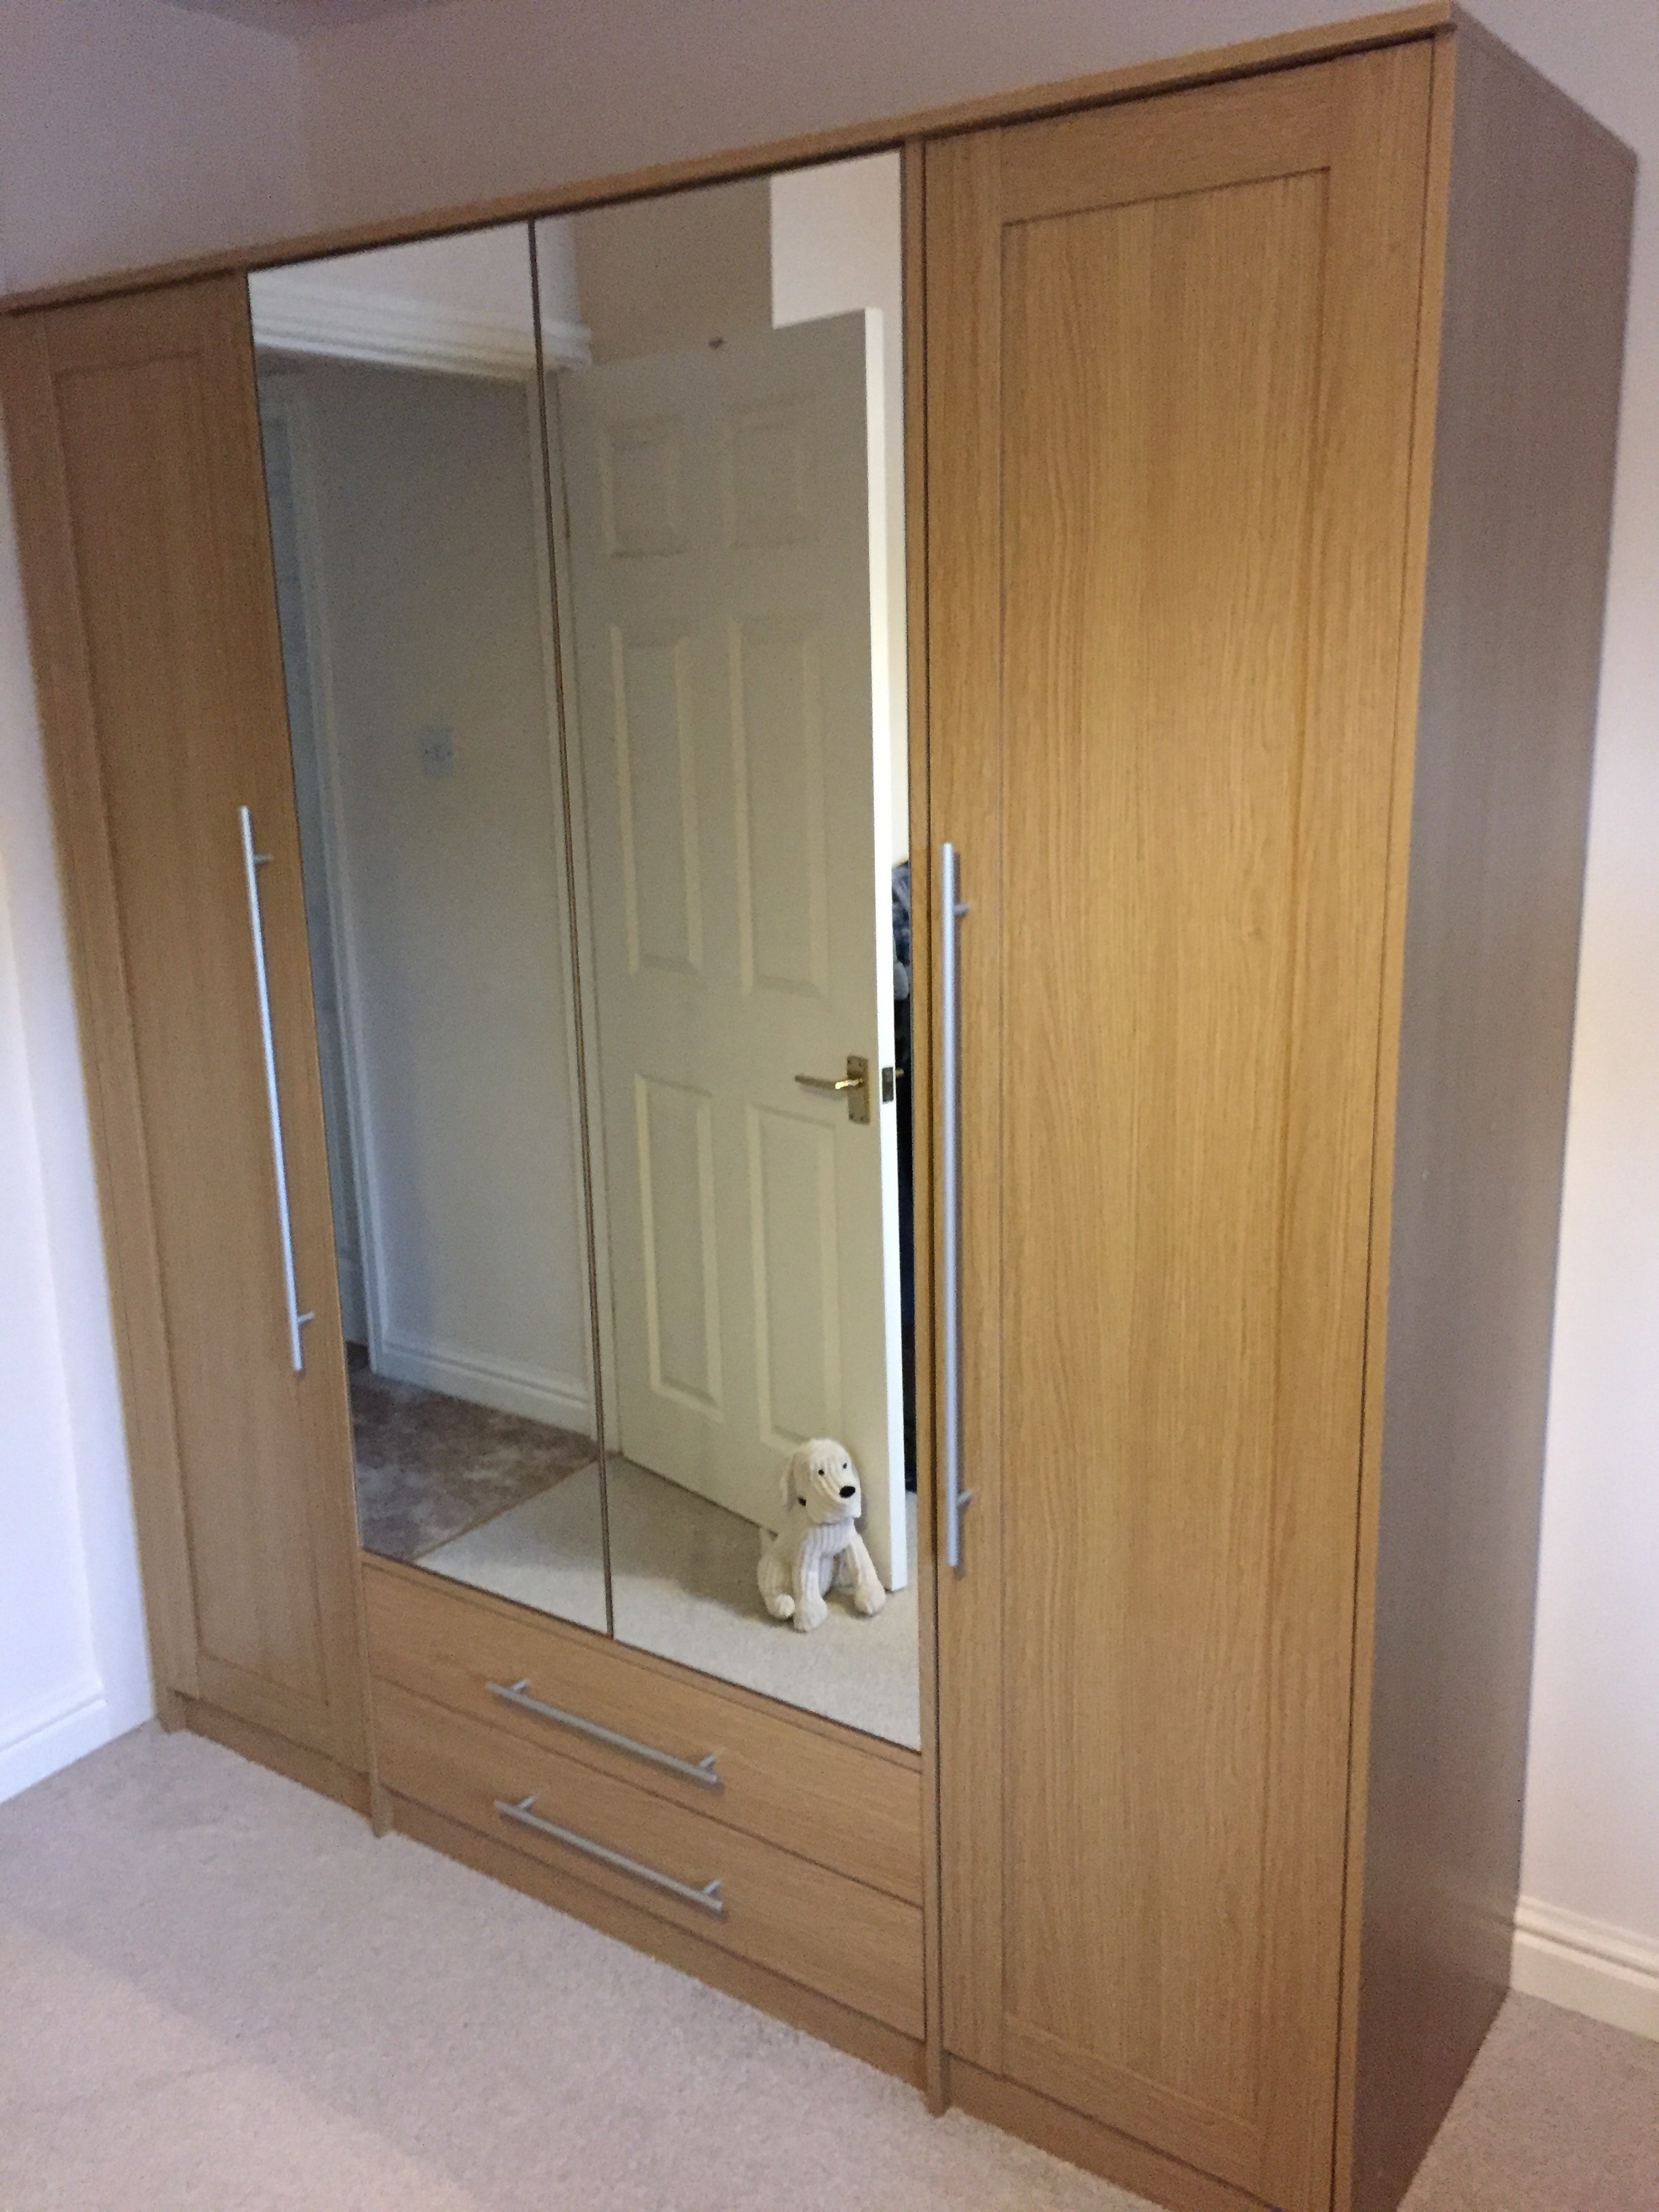 Cheap Wardrobes Pertaining To Most Recent Diy Flat Pack Wardrobes Wardrobe Kits Walk In Pine Cheap You Need (View 5 of 15)